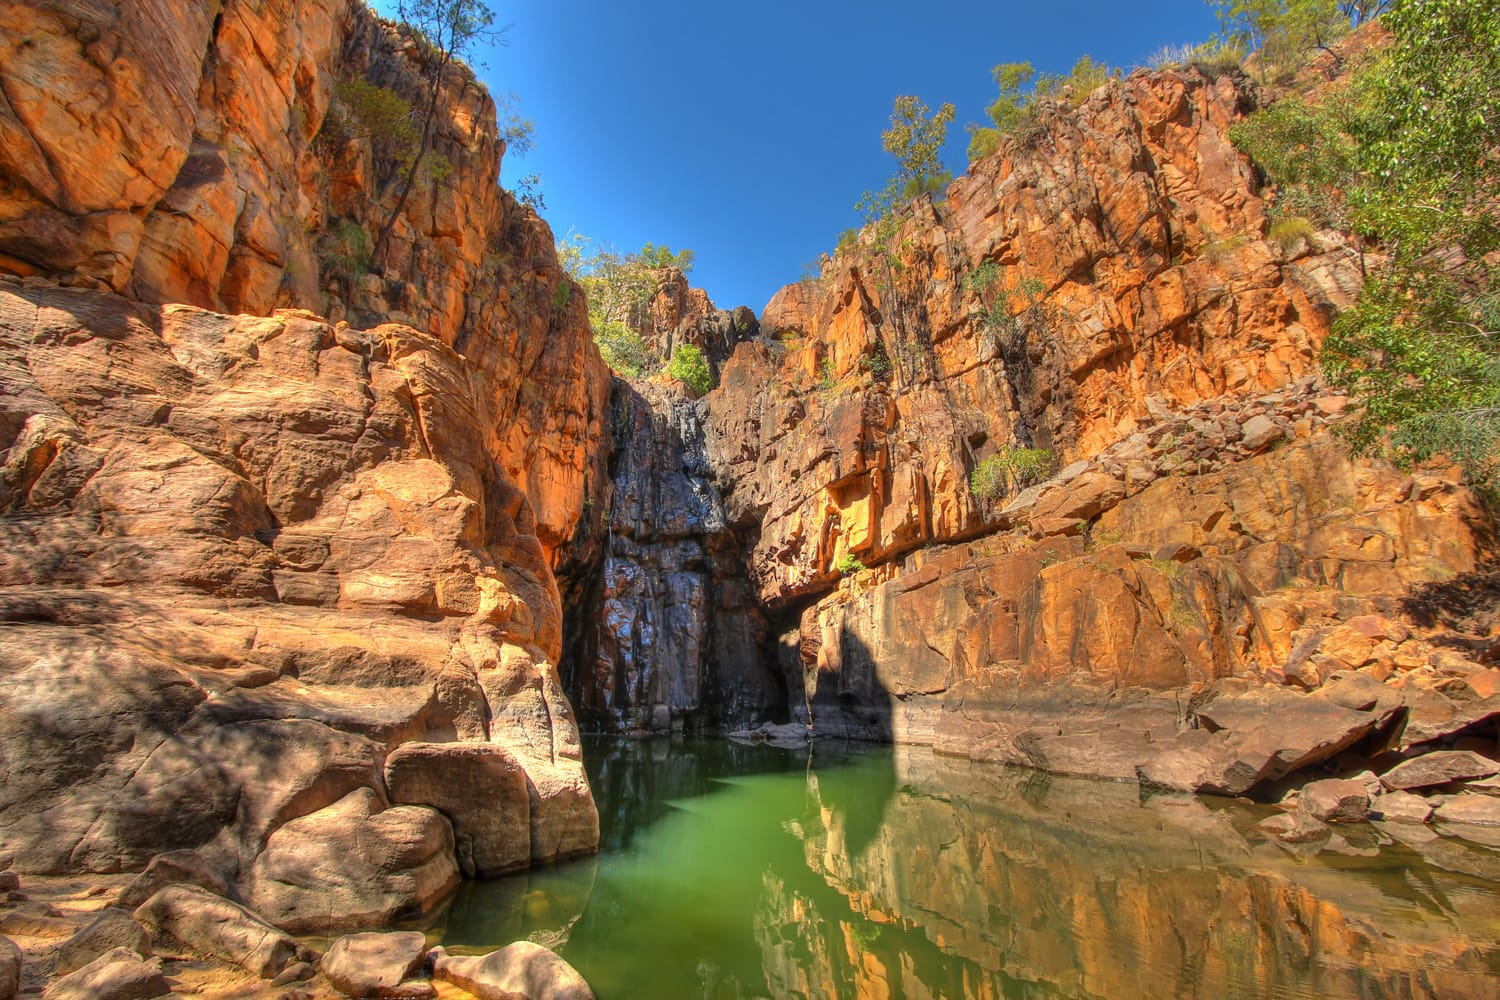 Nitmiluk (Katherine Gorge) national park in Australia